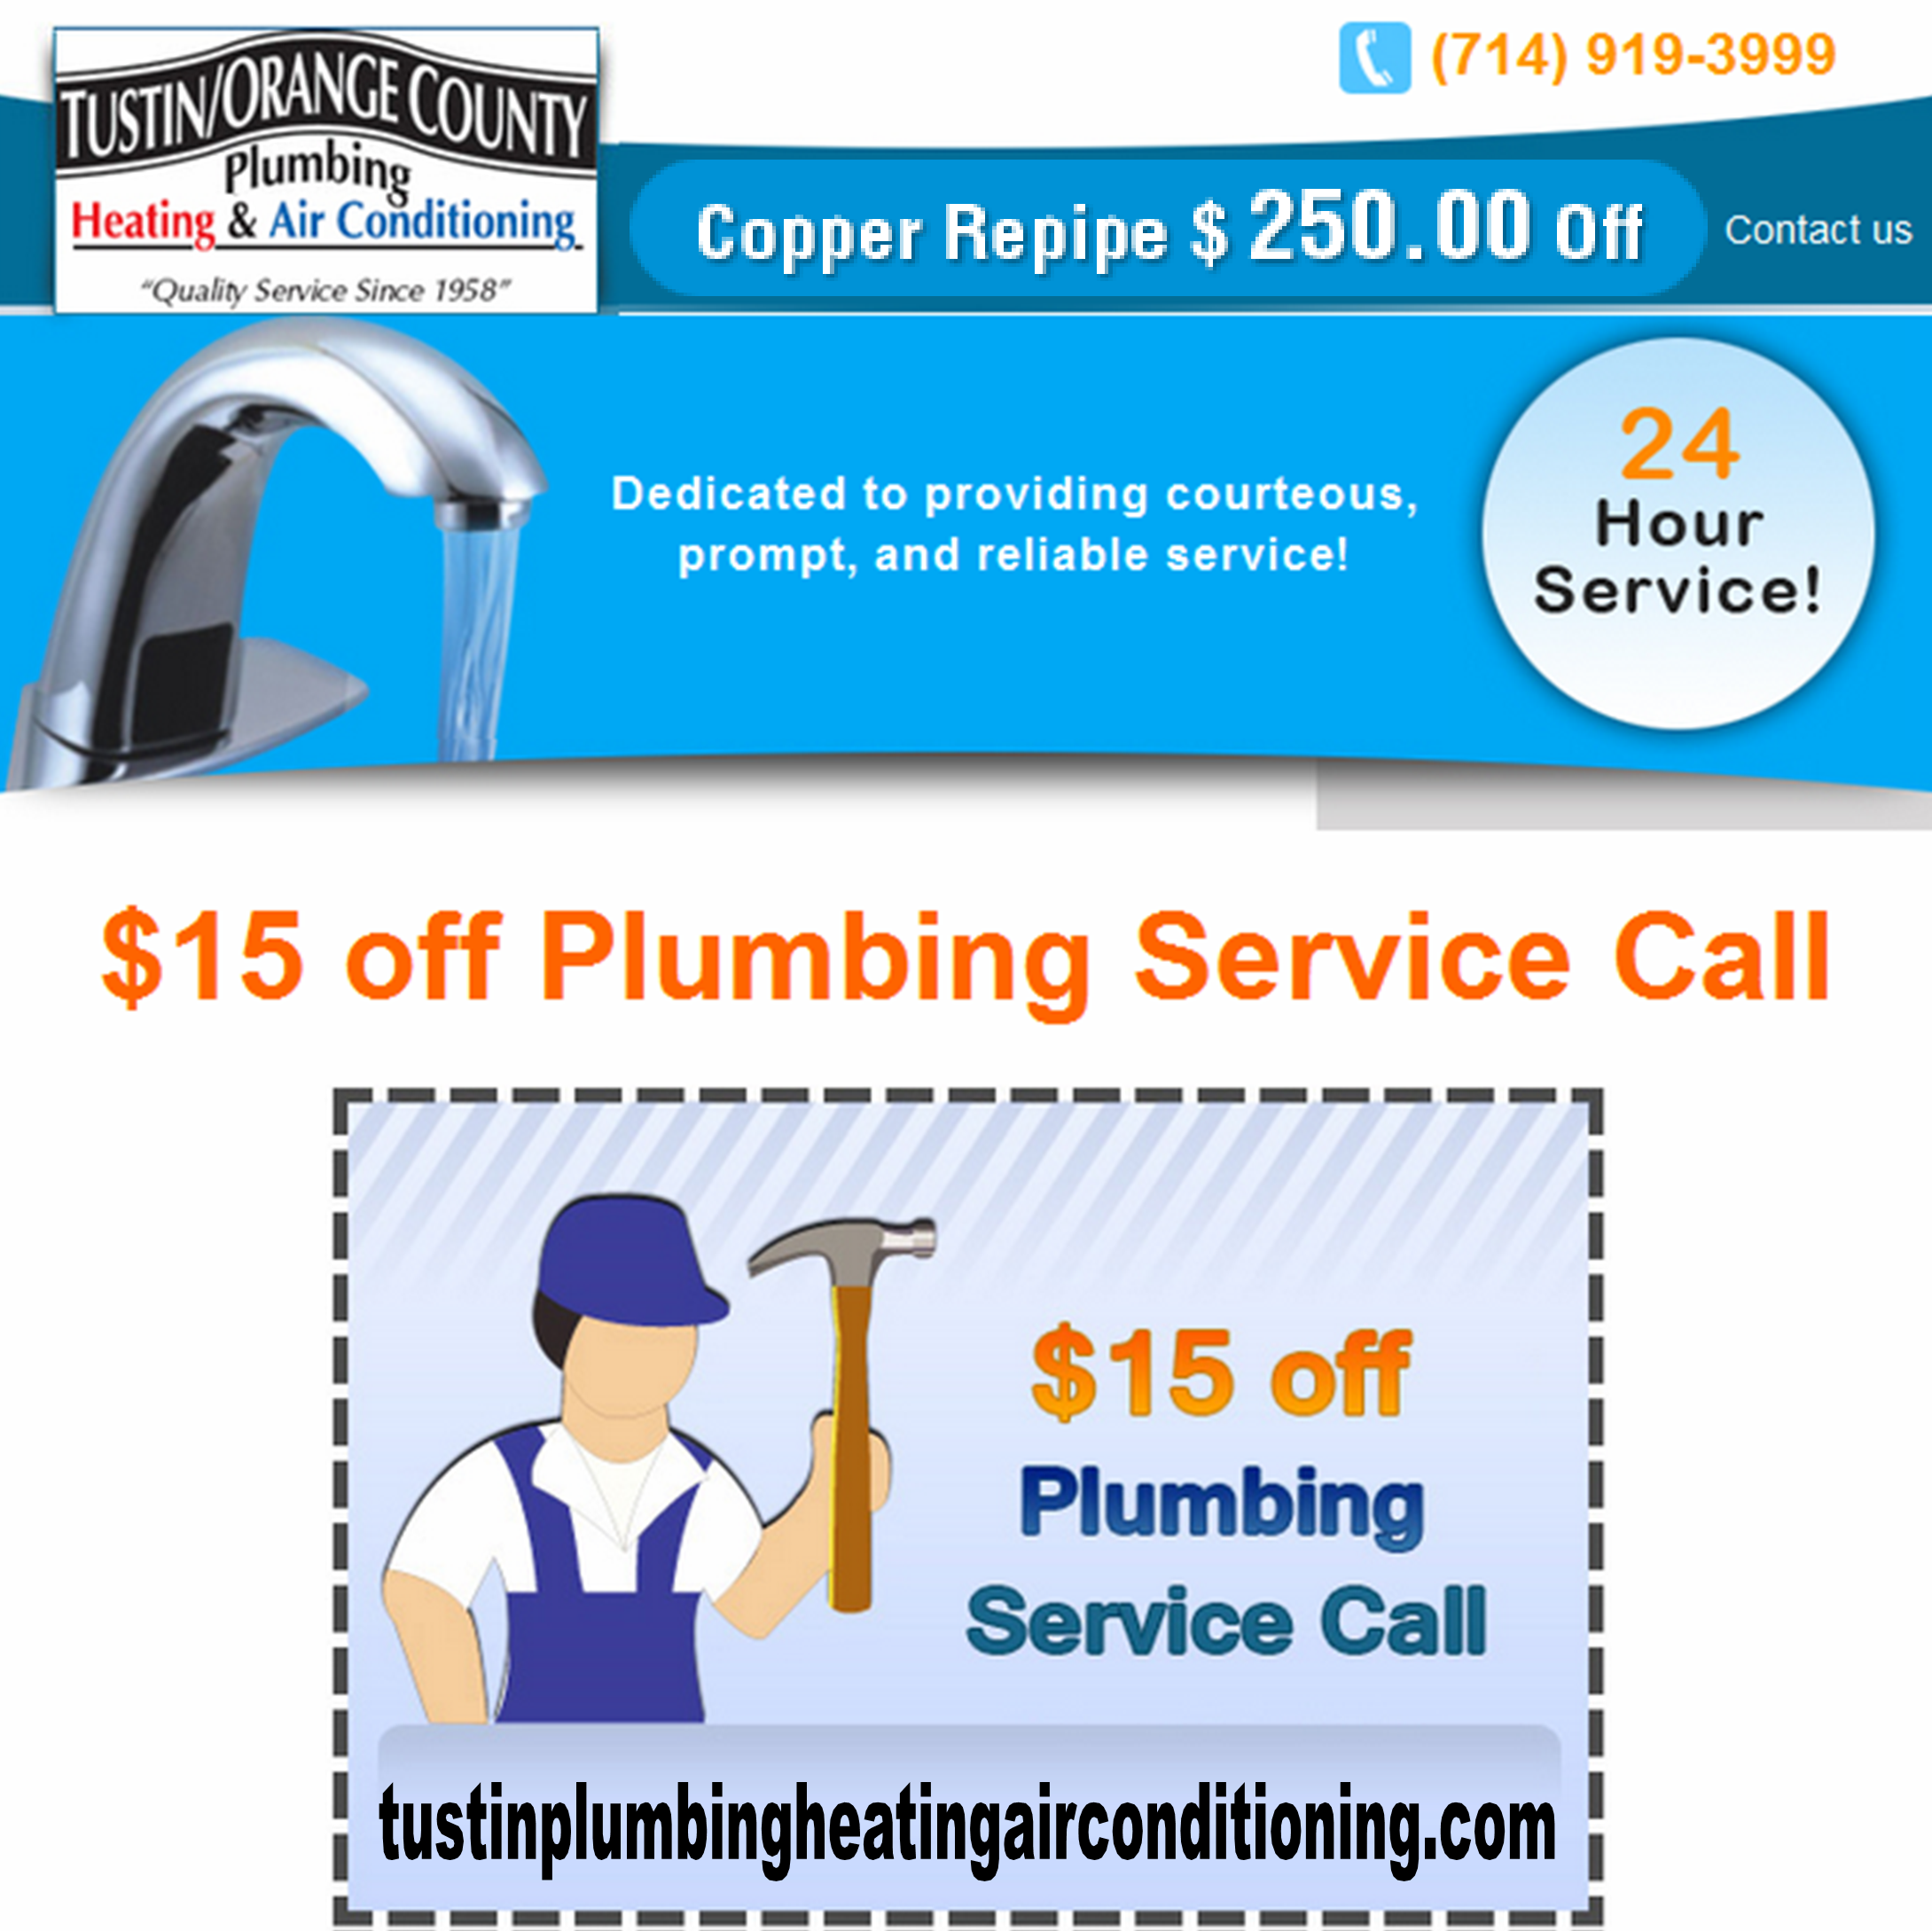 Discounts on 24 Hour Emergency Plumbing and all other Plumber Services in Tustin